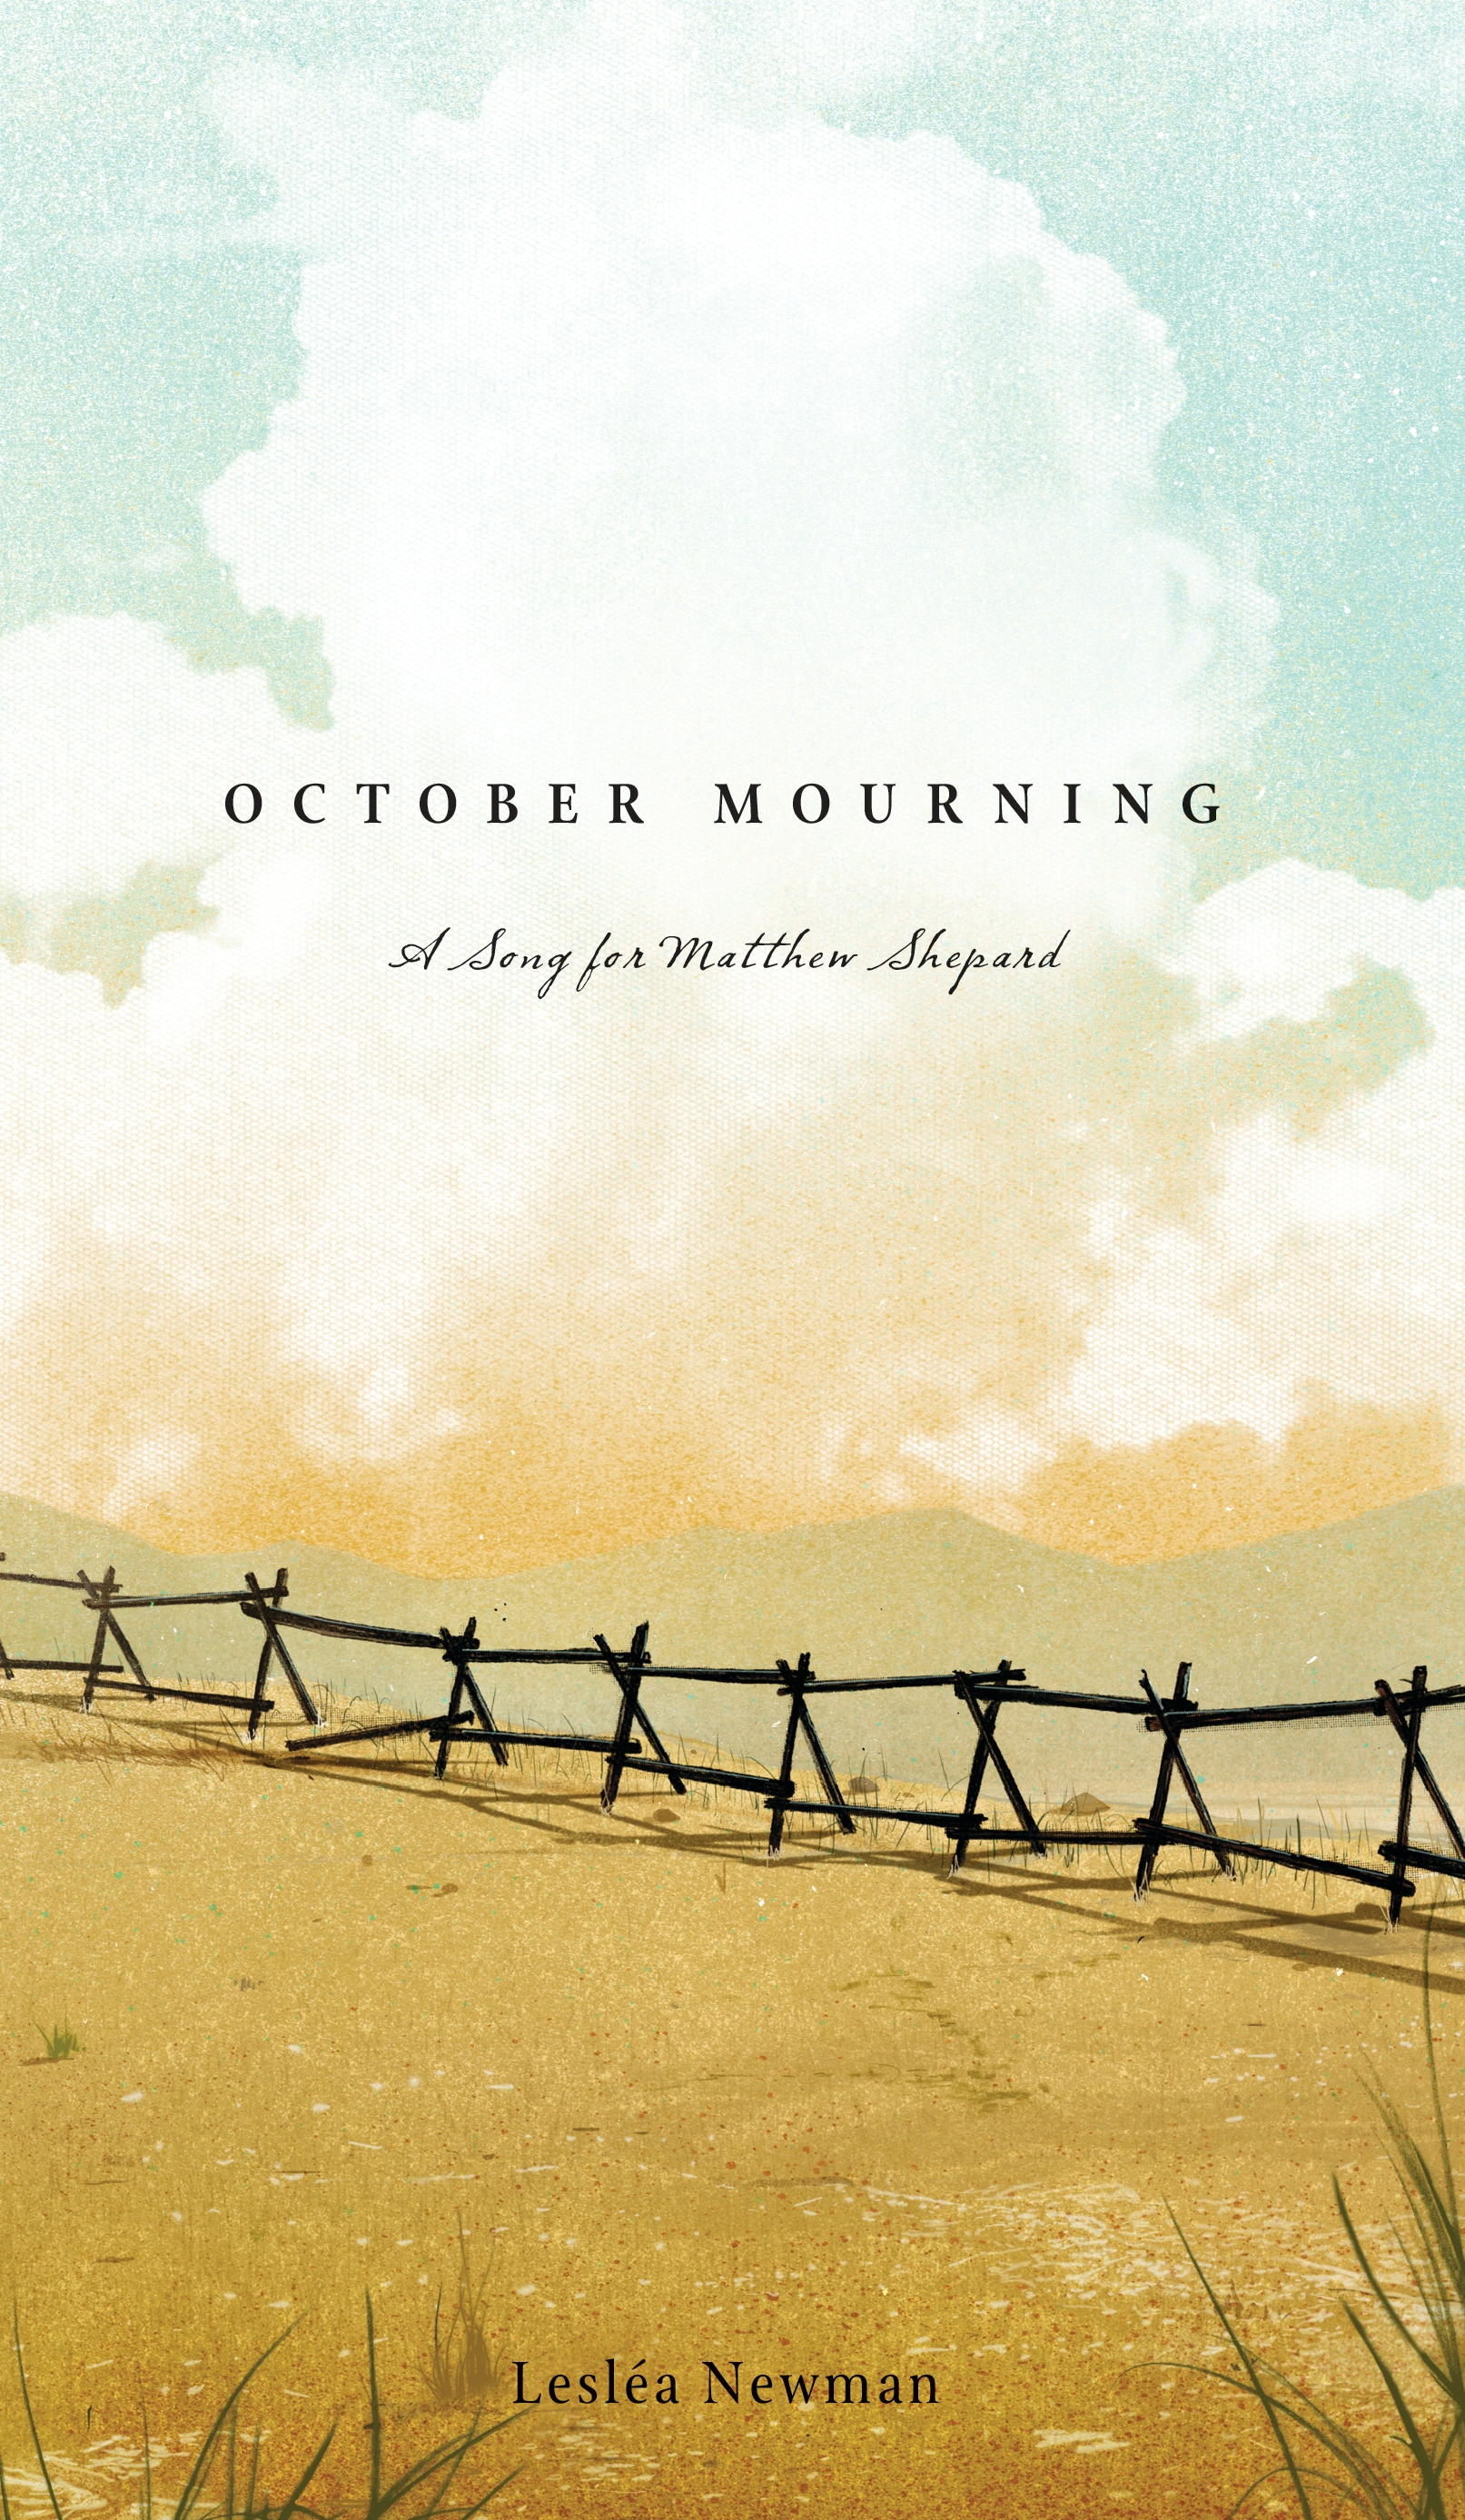 Reading from 'October Mourning: A Song for Matthew Shepard'